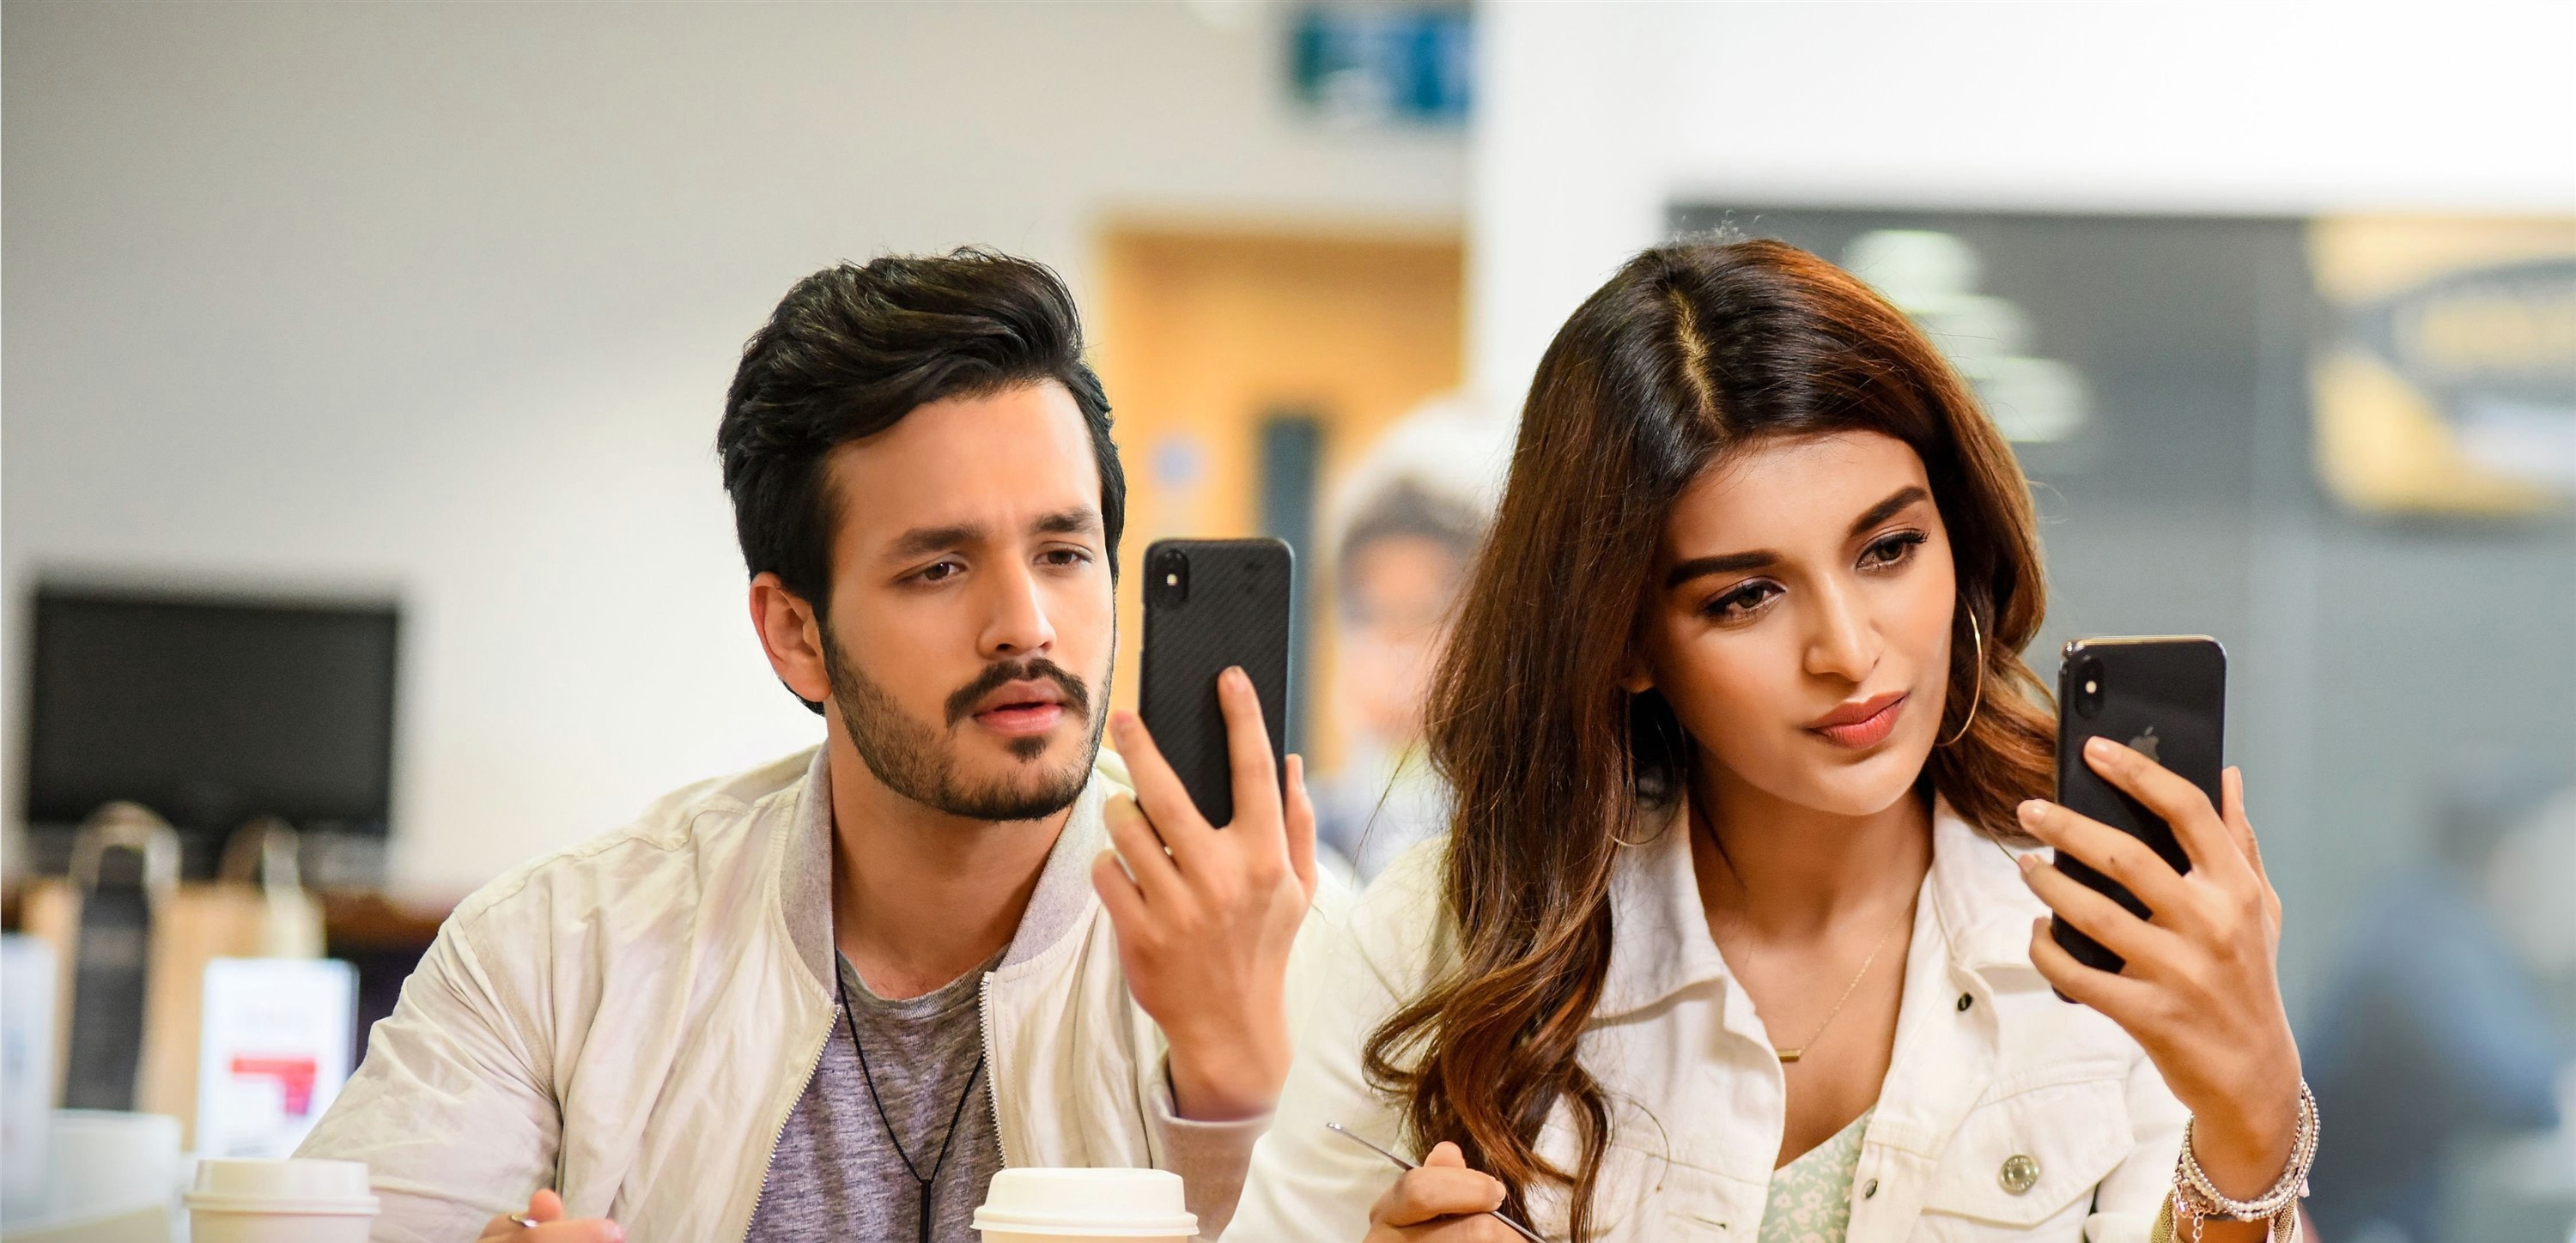 mr-majnu-movie-stills-hd-akhil-akkineni-nidhhi-agerwal-phone-song